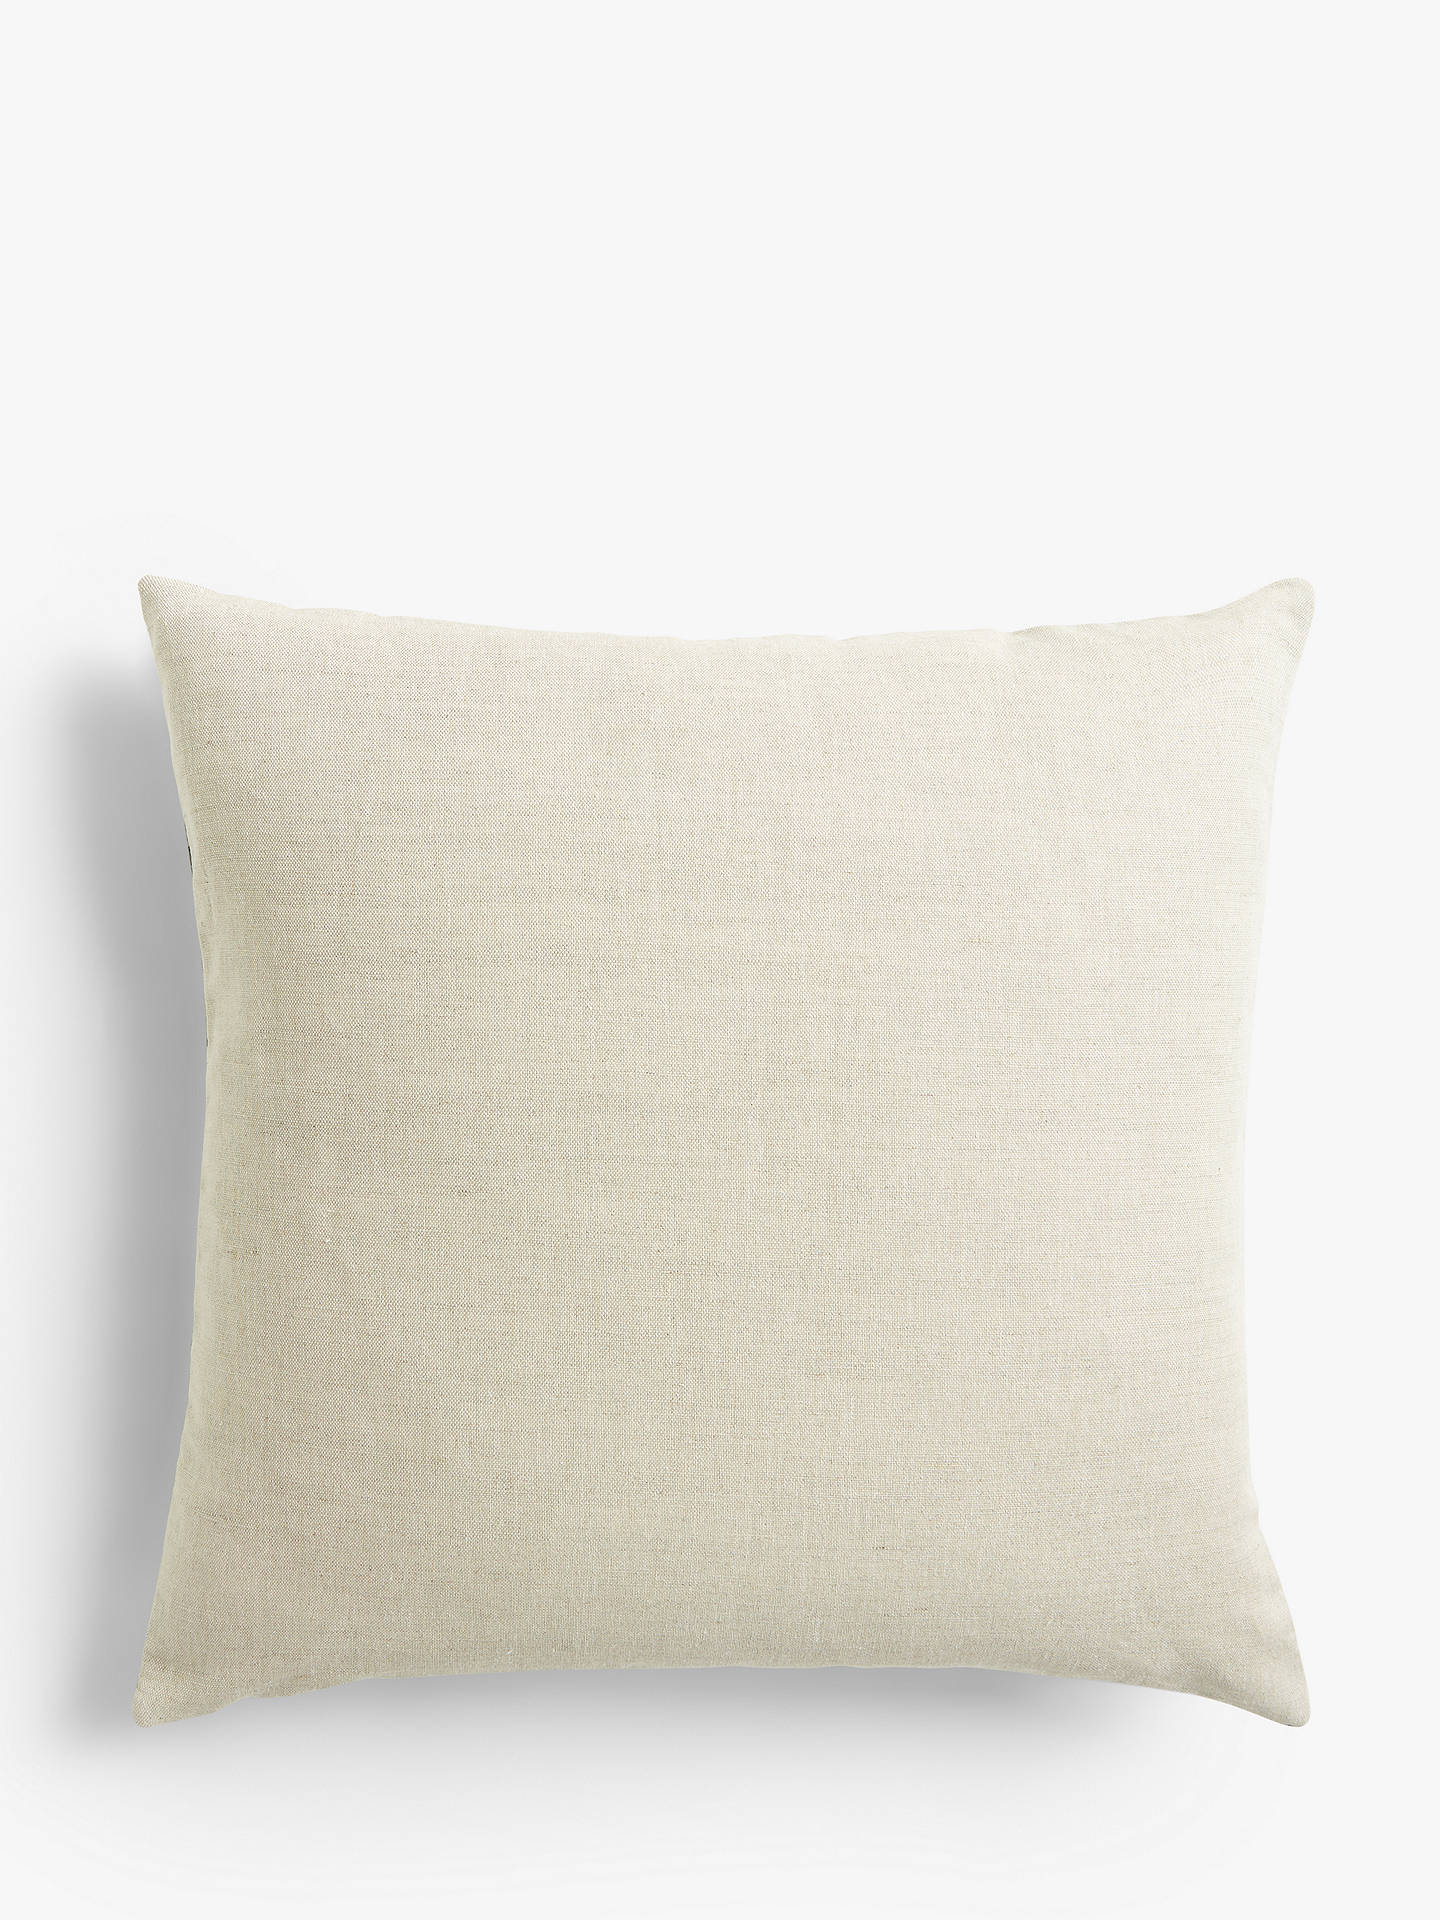 Buy Morris & Co. Marigold Cushion, Navy / Turquoise Online at johnlewis.com